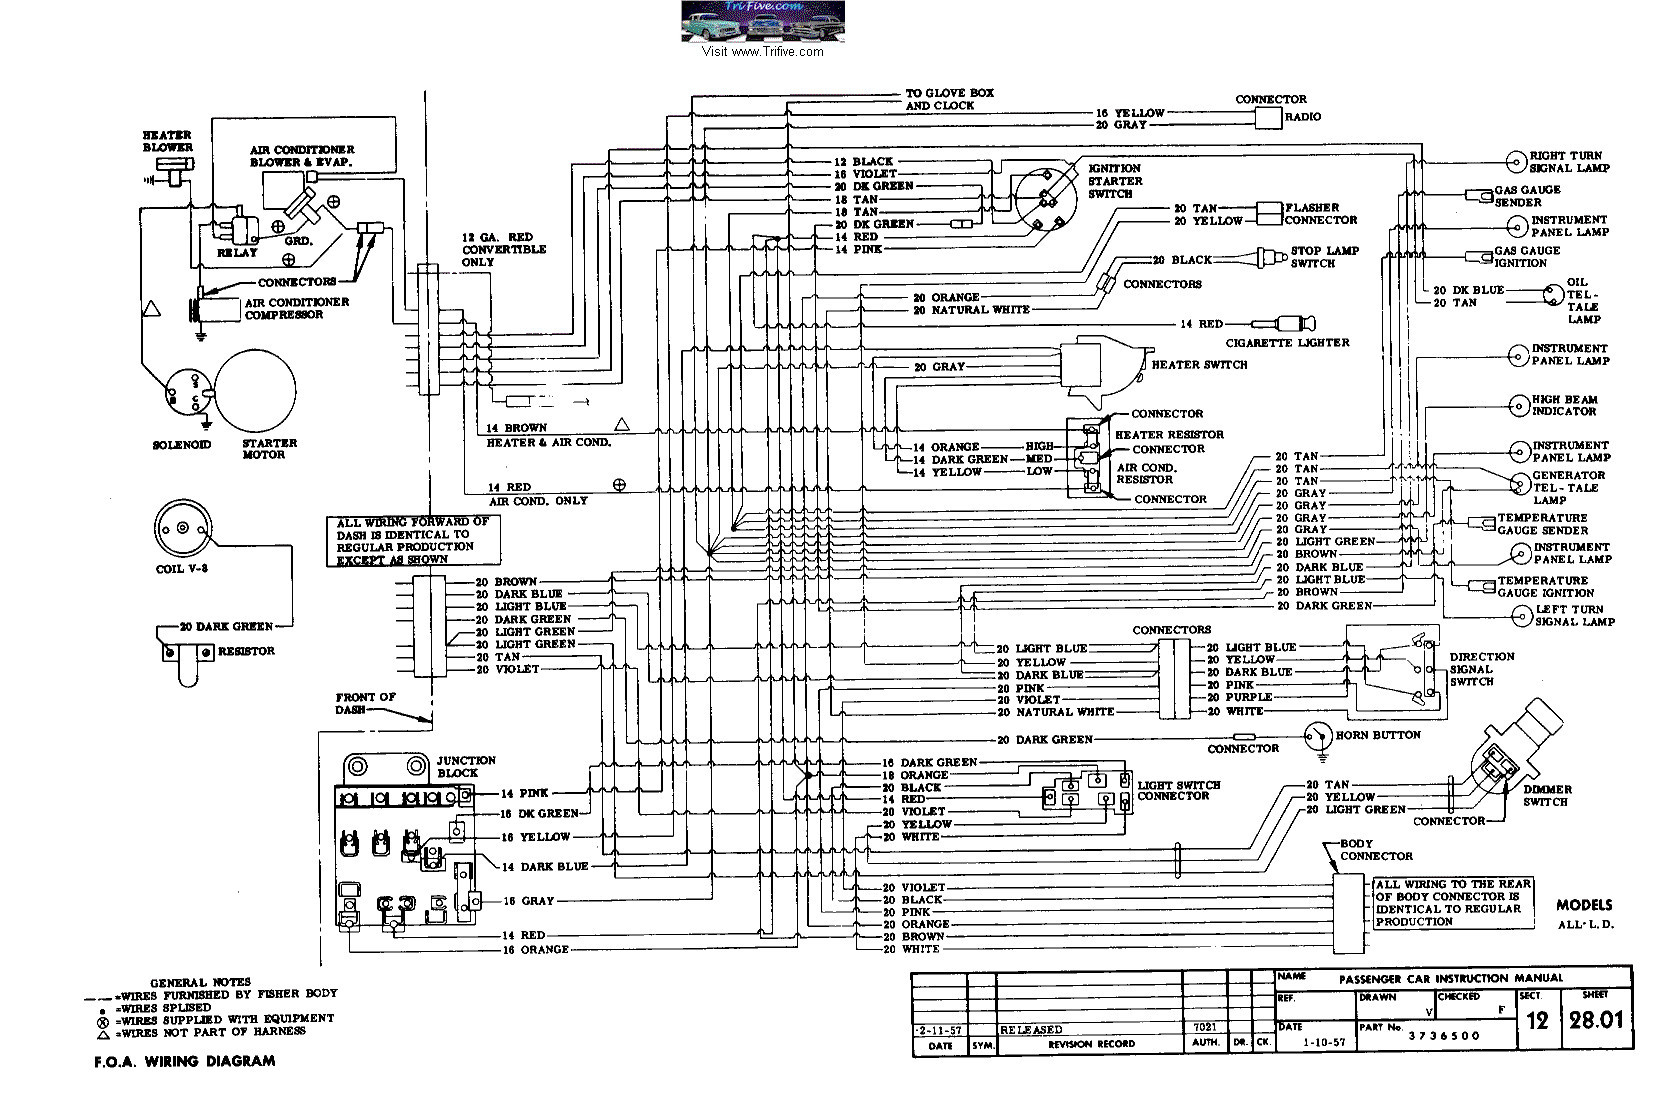 1955 ford f100 wiring diagram as well 1955 chevy fuse panel diagram rh losirekb pw